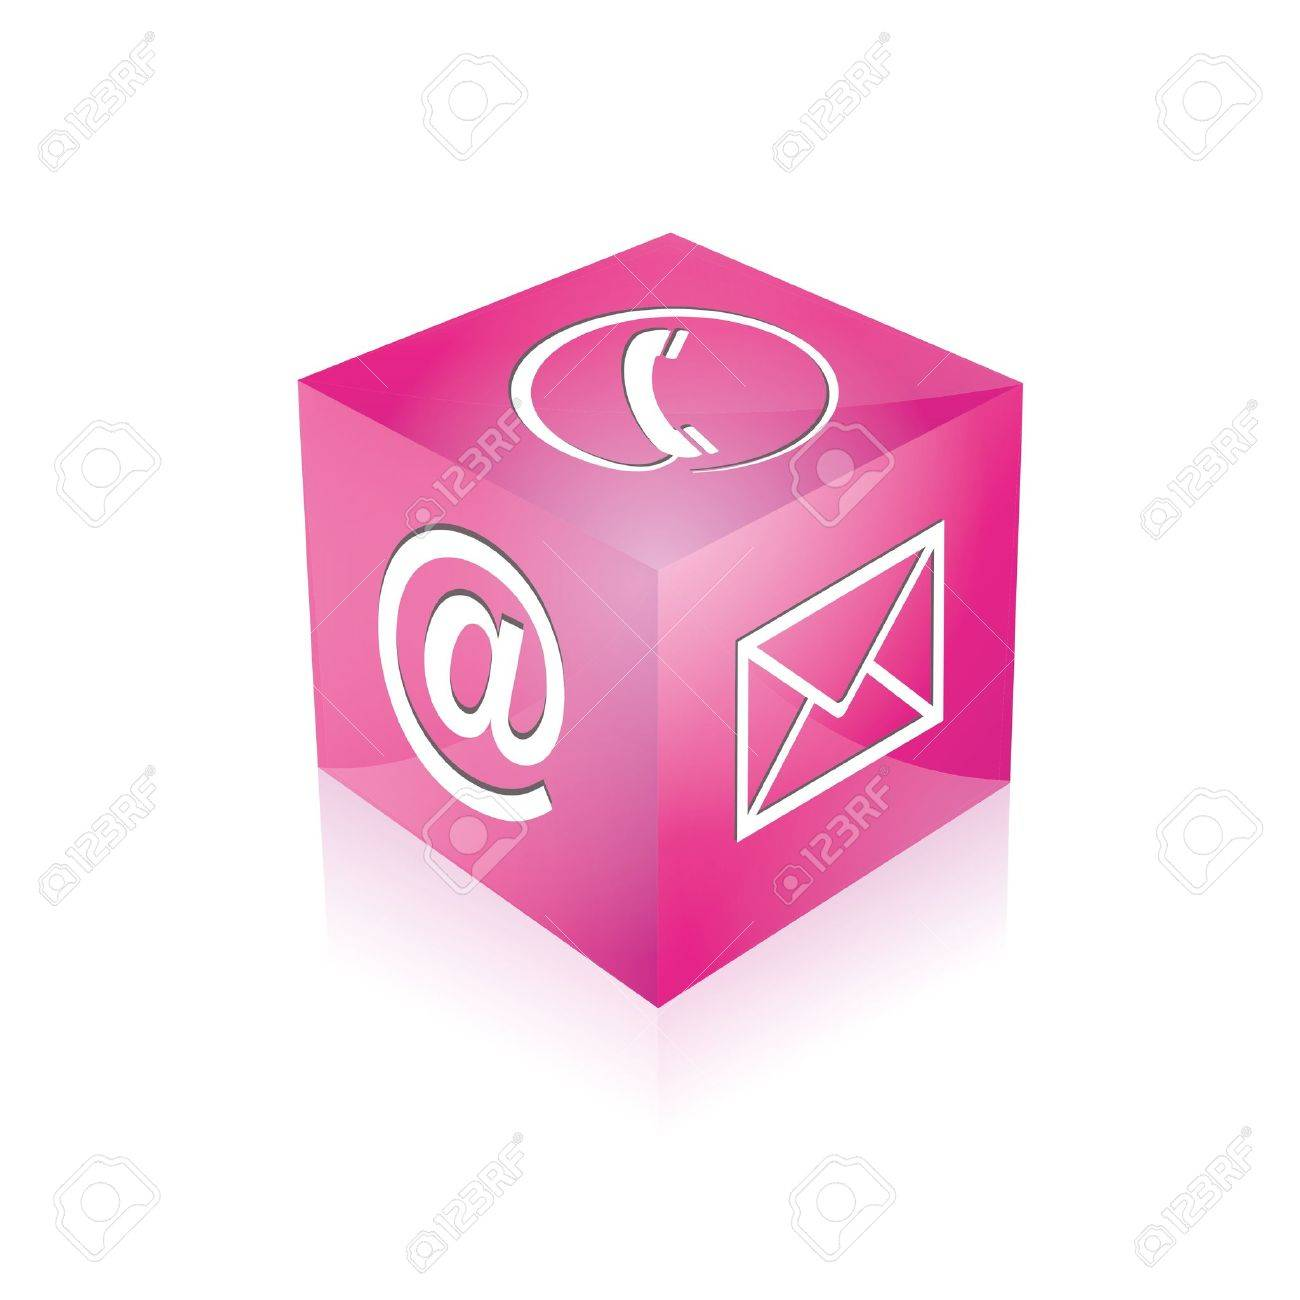 Contact cube phone at email e-mail hotline kontaktfomular callcenter call pictogram sign symbol cube Standard-Bild - 14757902